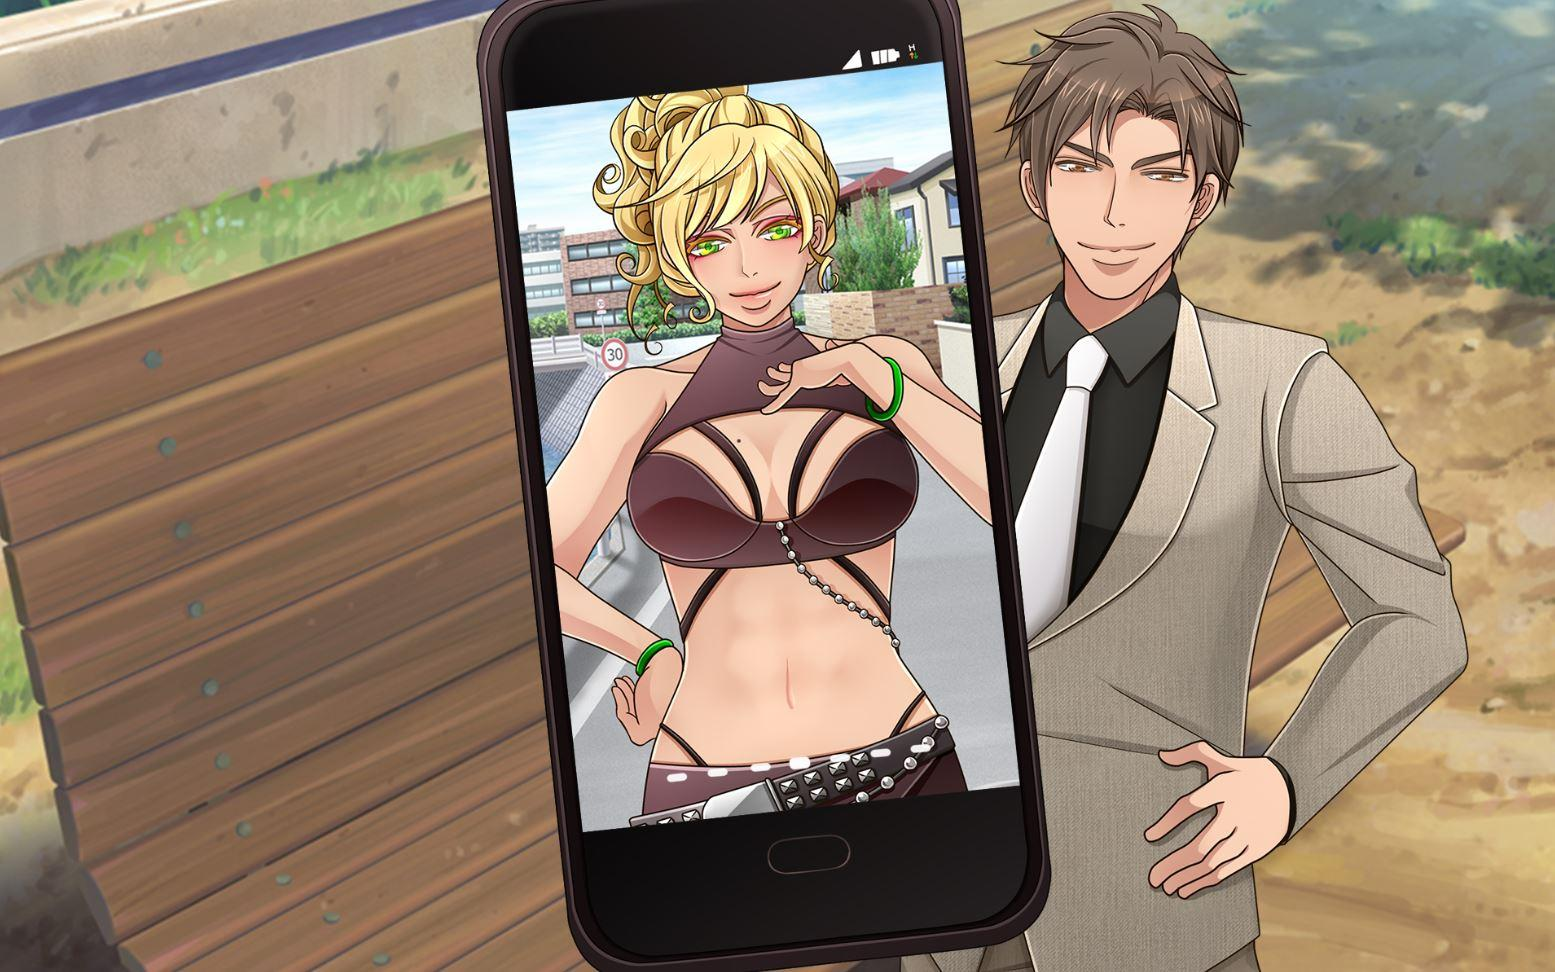 private amateur girl galleries